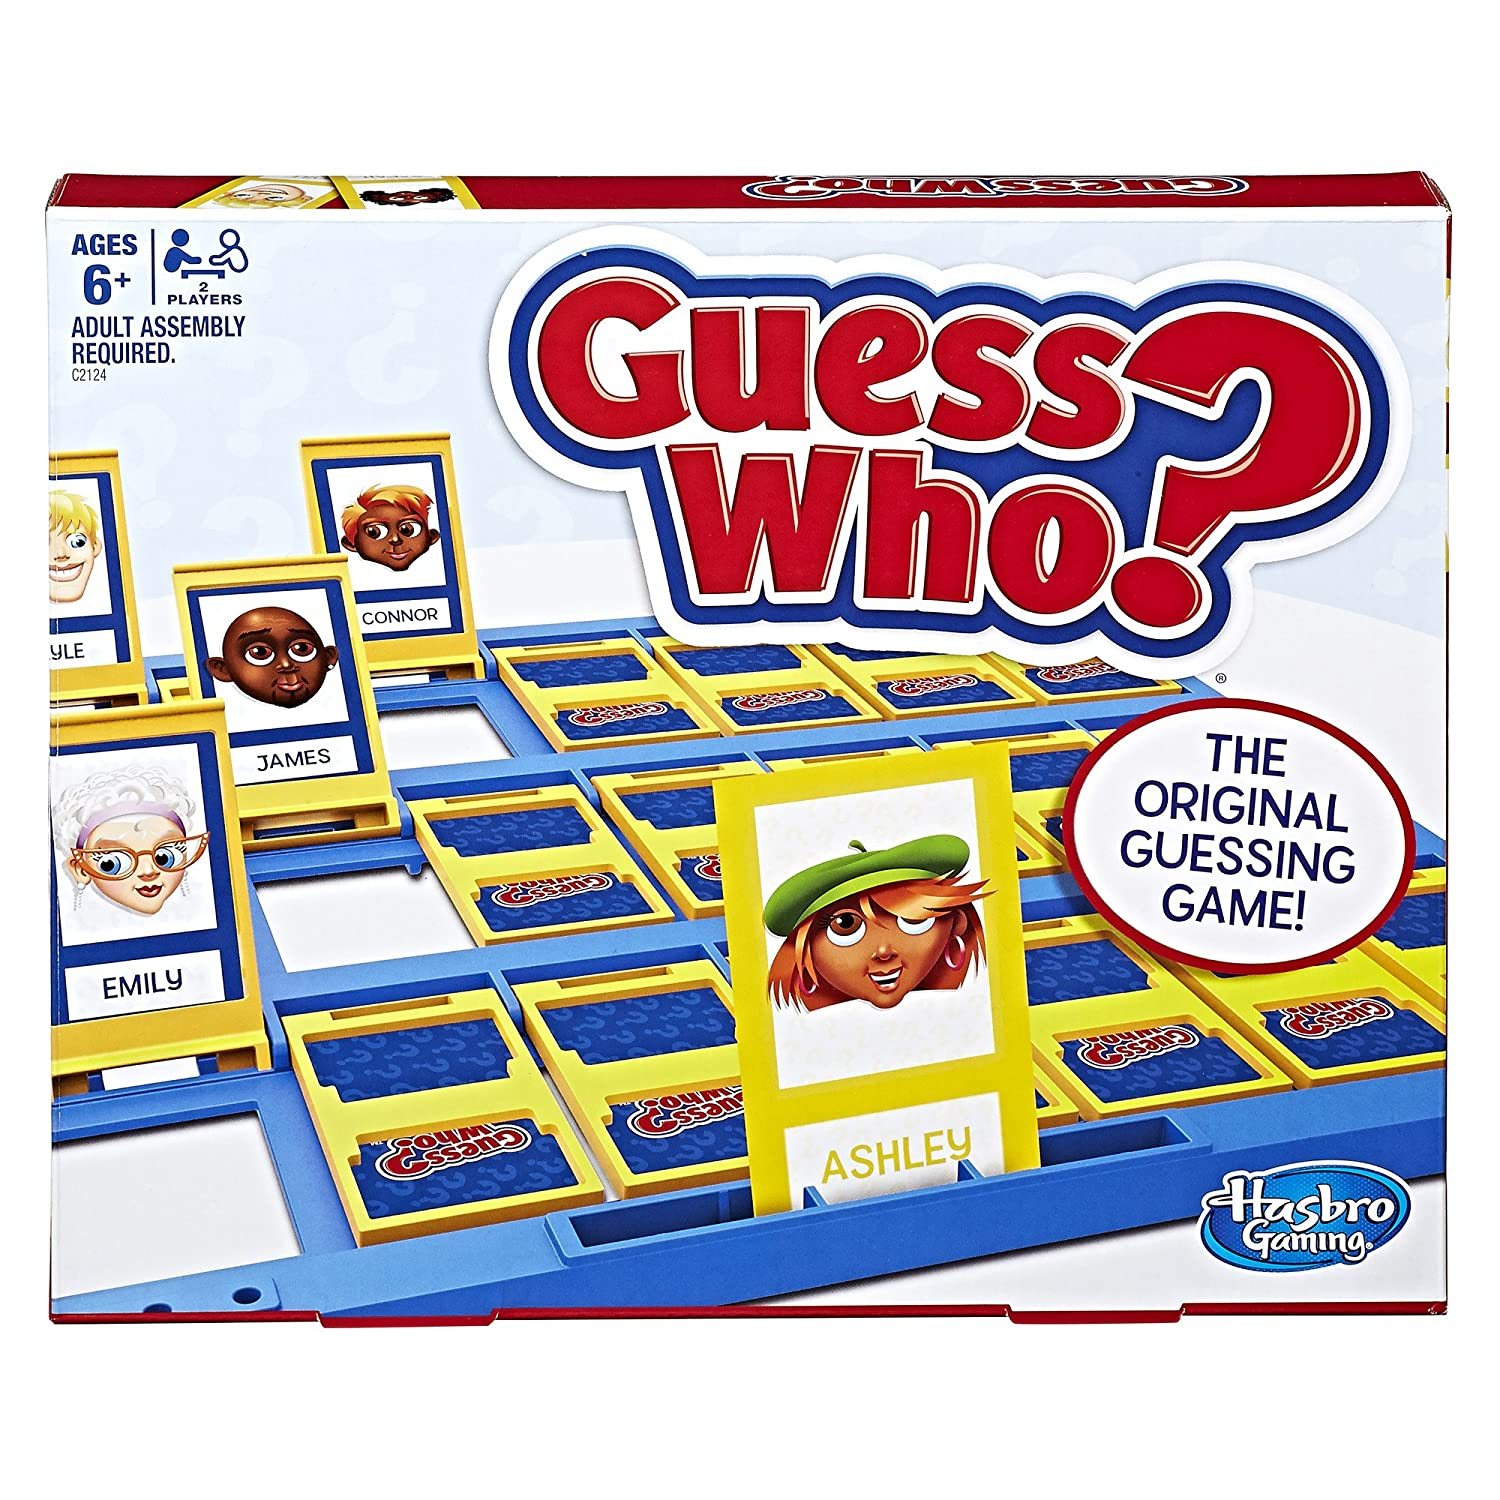 Guesswho approx. $10